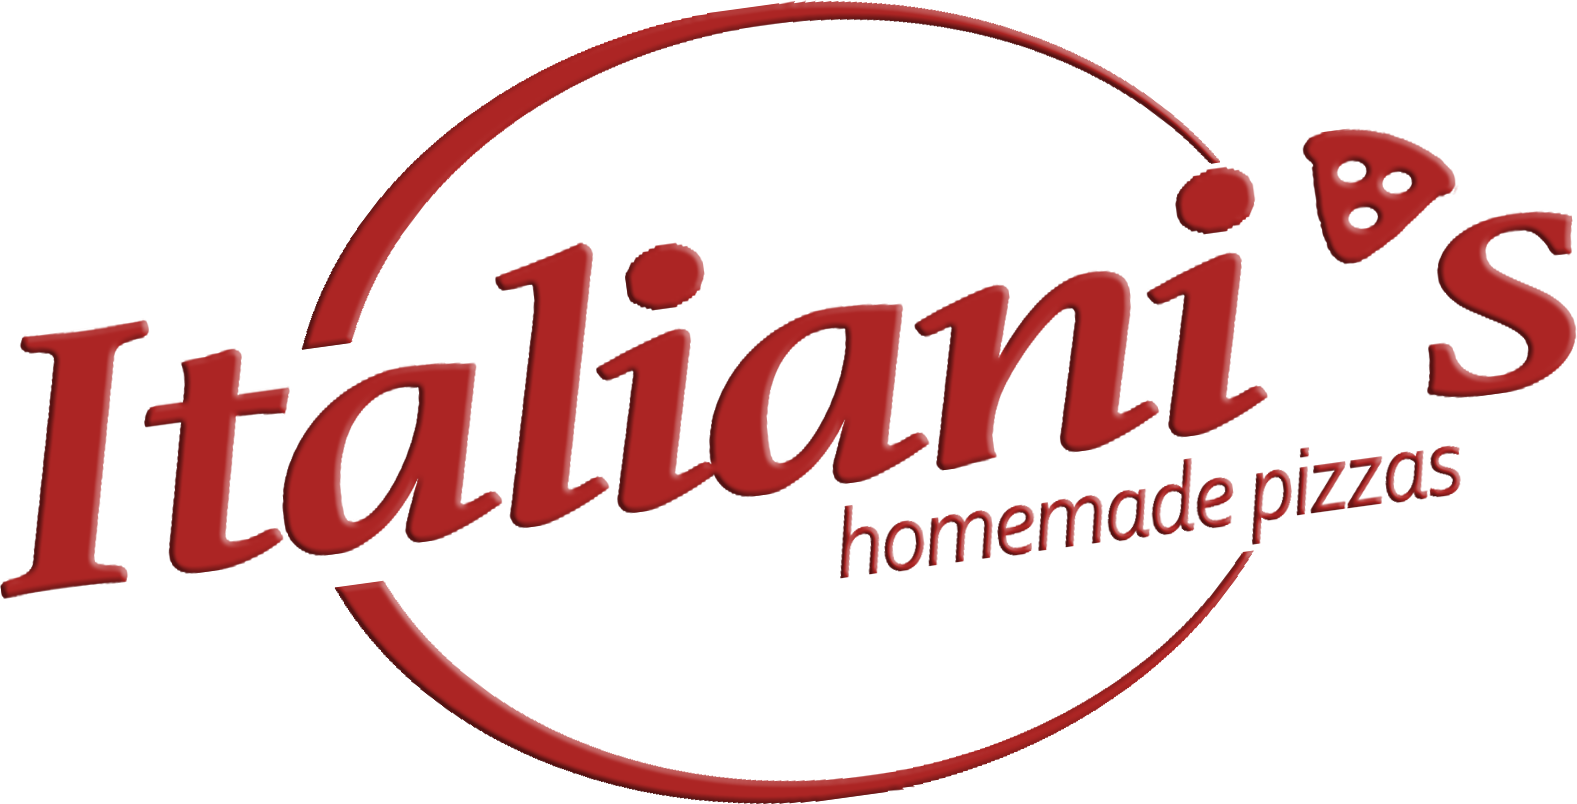 ITALIANI'S – HOMEMADE PIZZA